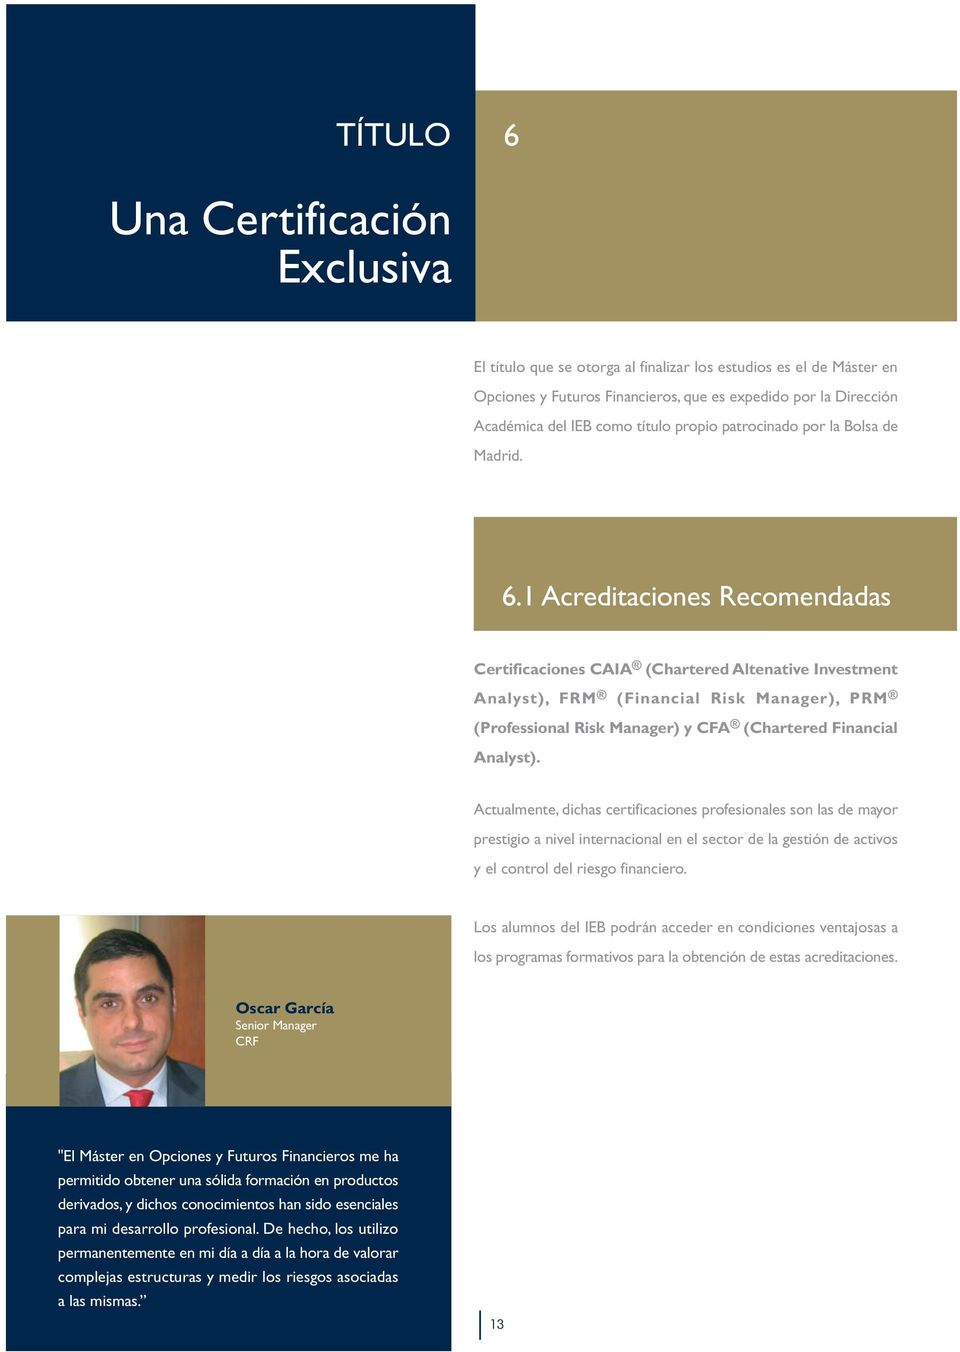 1 Acreditaciones Recomendadas Certificaciones CAIA (Chartered Altenative Investment Analyst), FRM (Financial Risk Manager), PRM (Professional Risk Manager) y CFA (Chartered Financial Analyst).